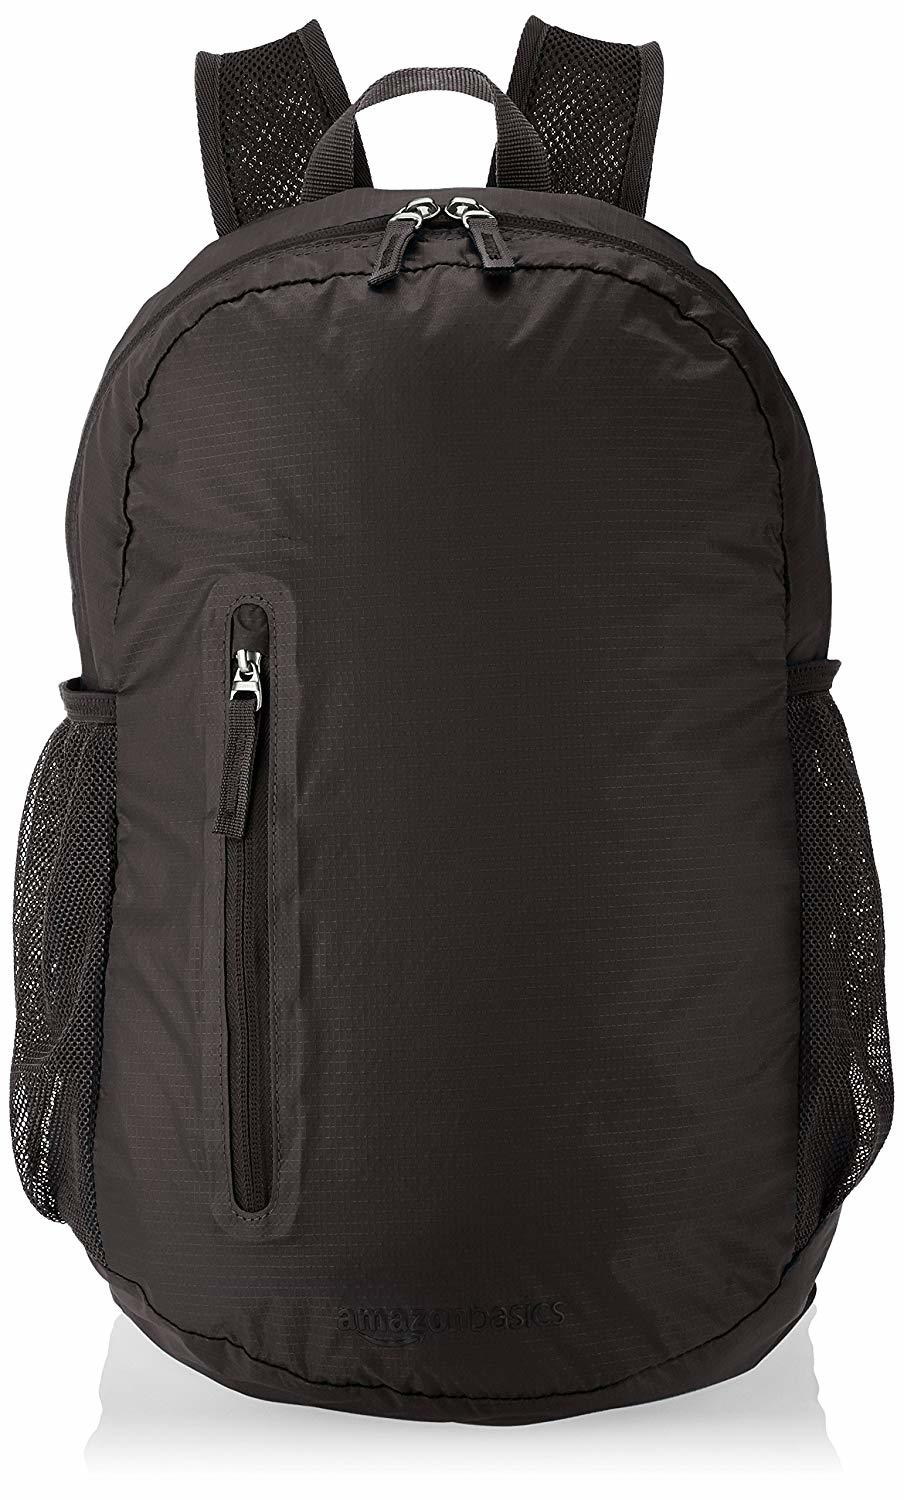 Amazon Basics Ultralight Packable Day Pack